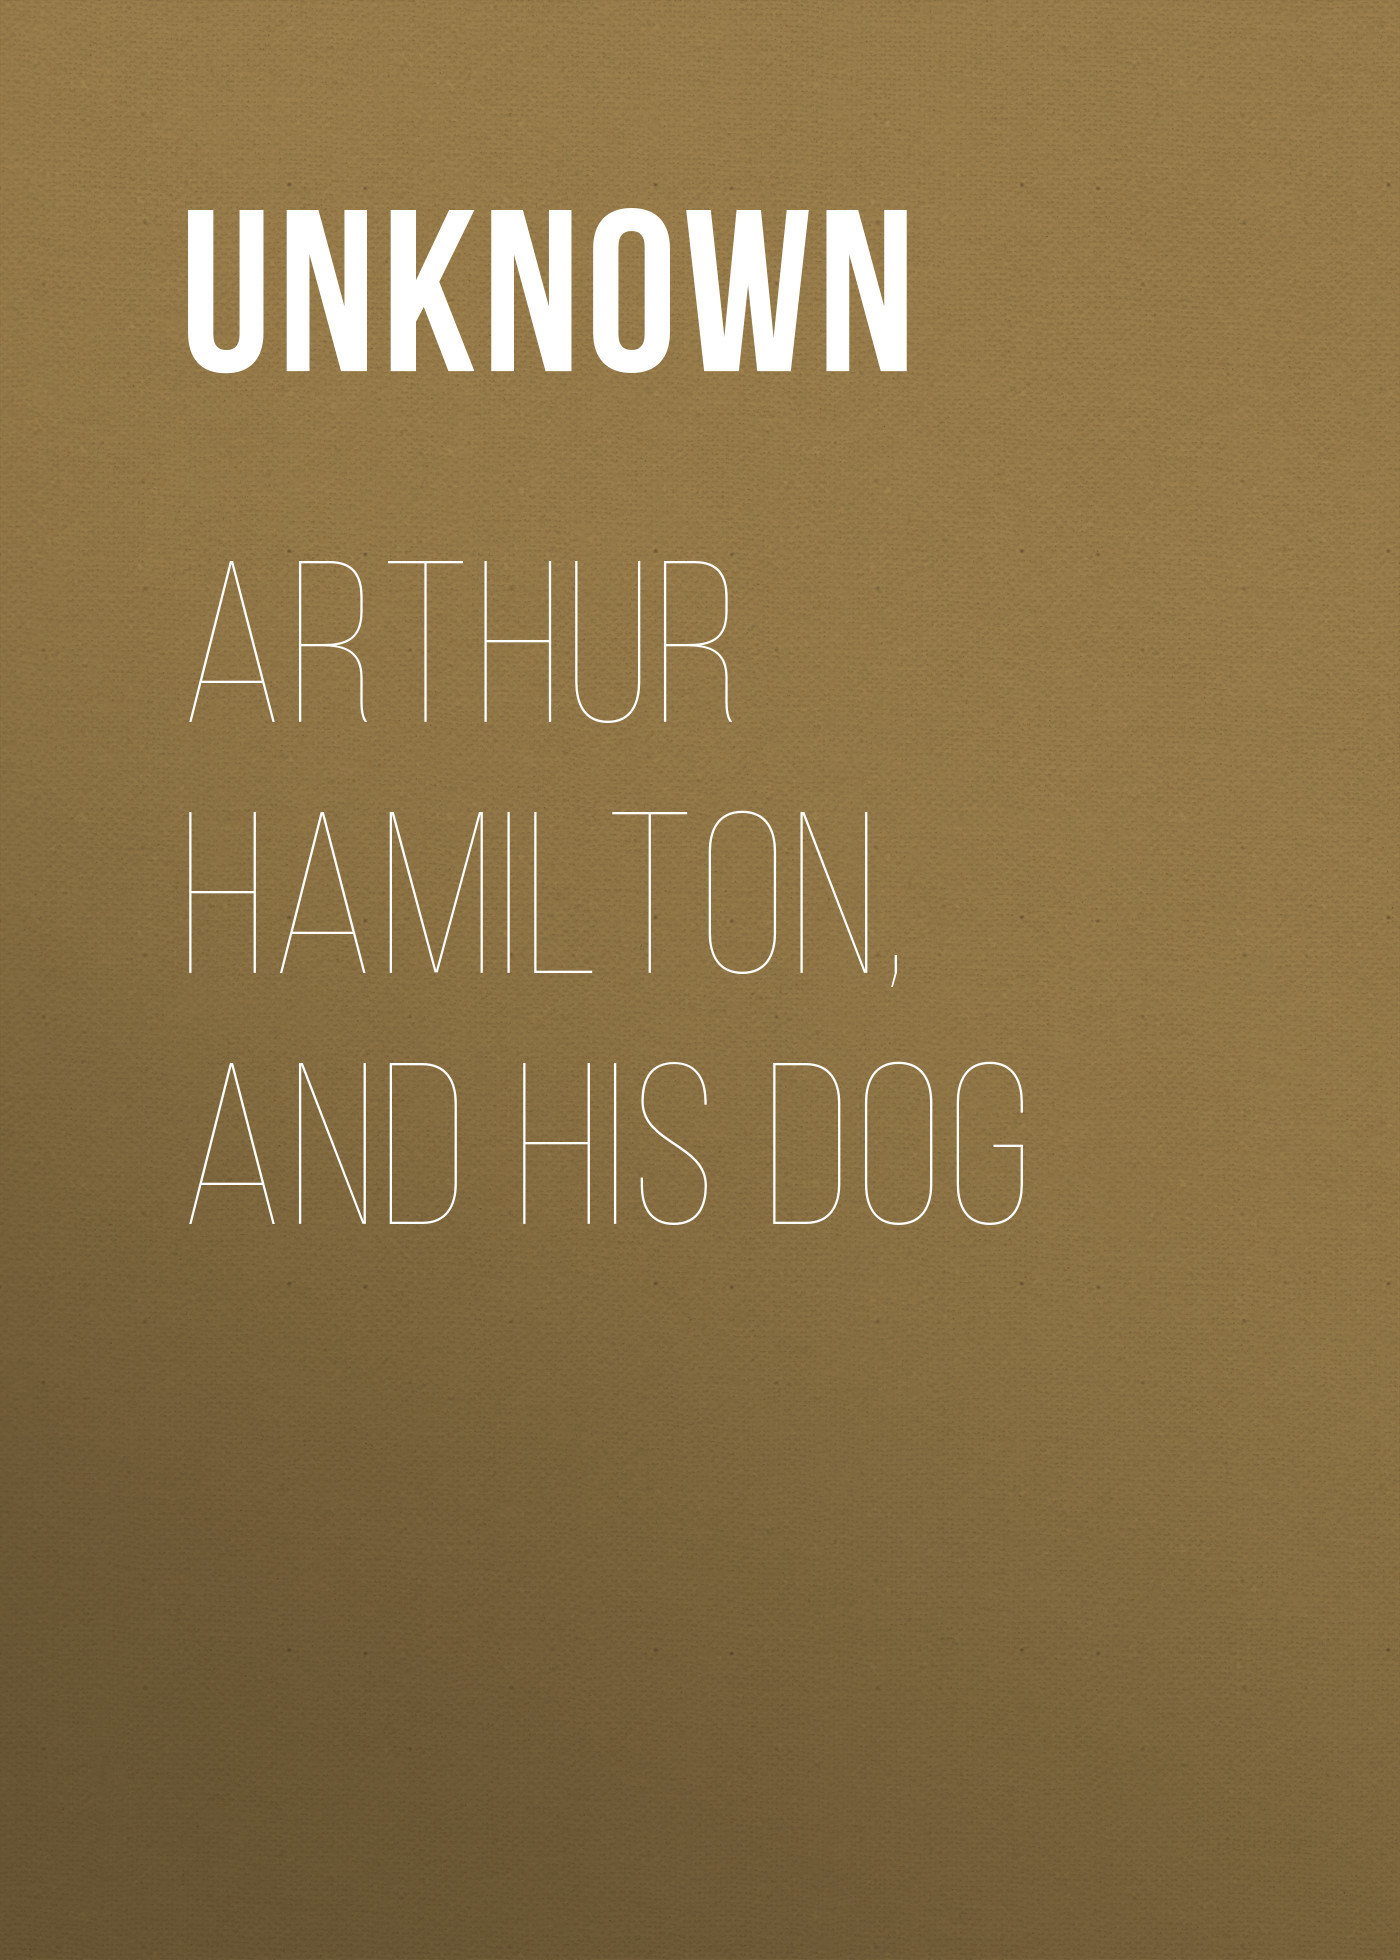 Unknown Arthur Hamilton, and His Dog hamilton and hare футболка